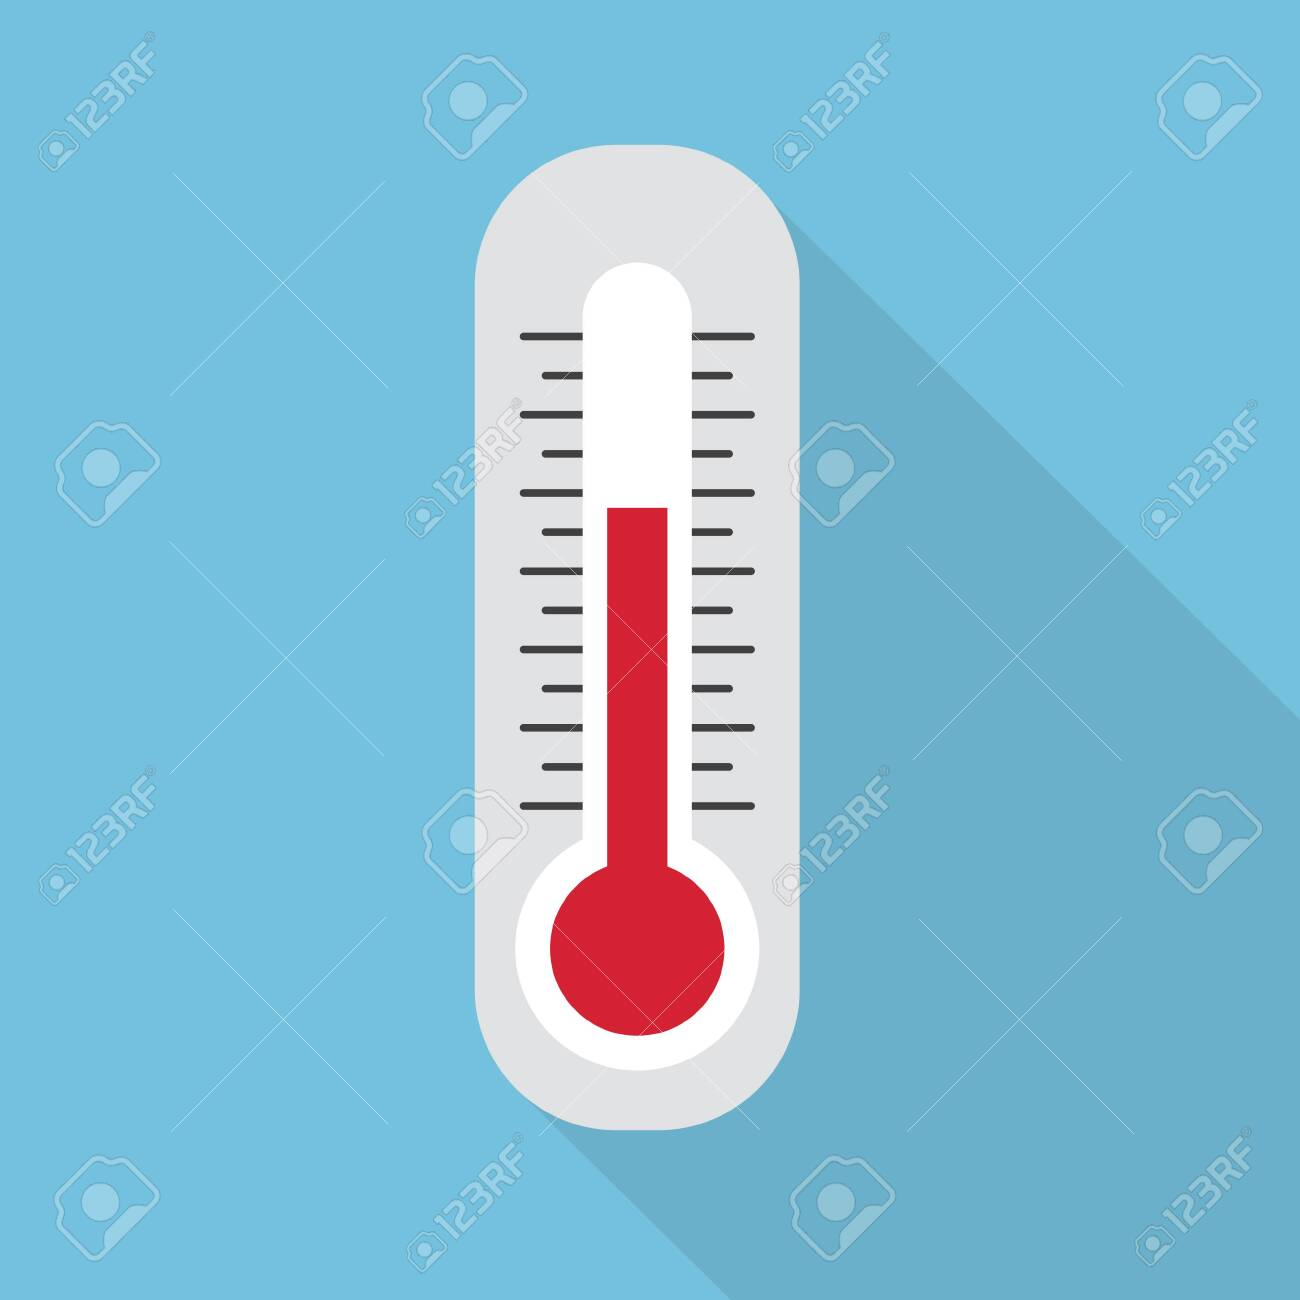 white thermometer icon- vector illustration - 142883160